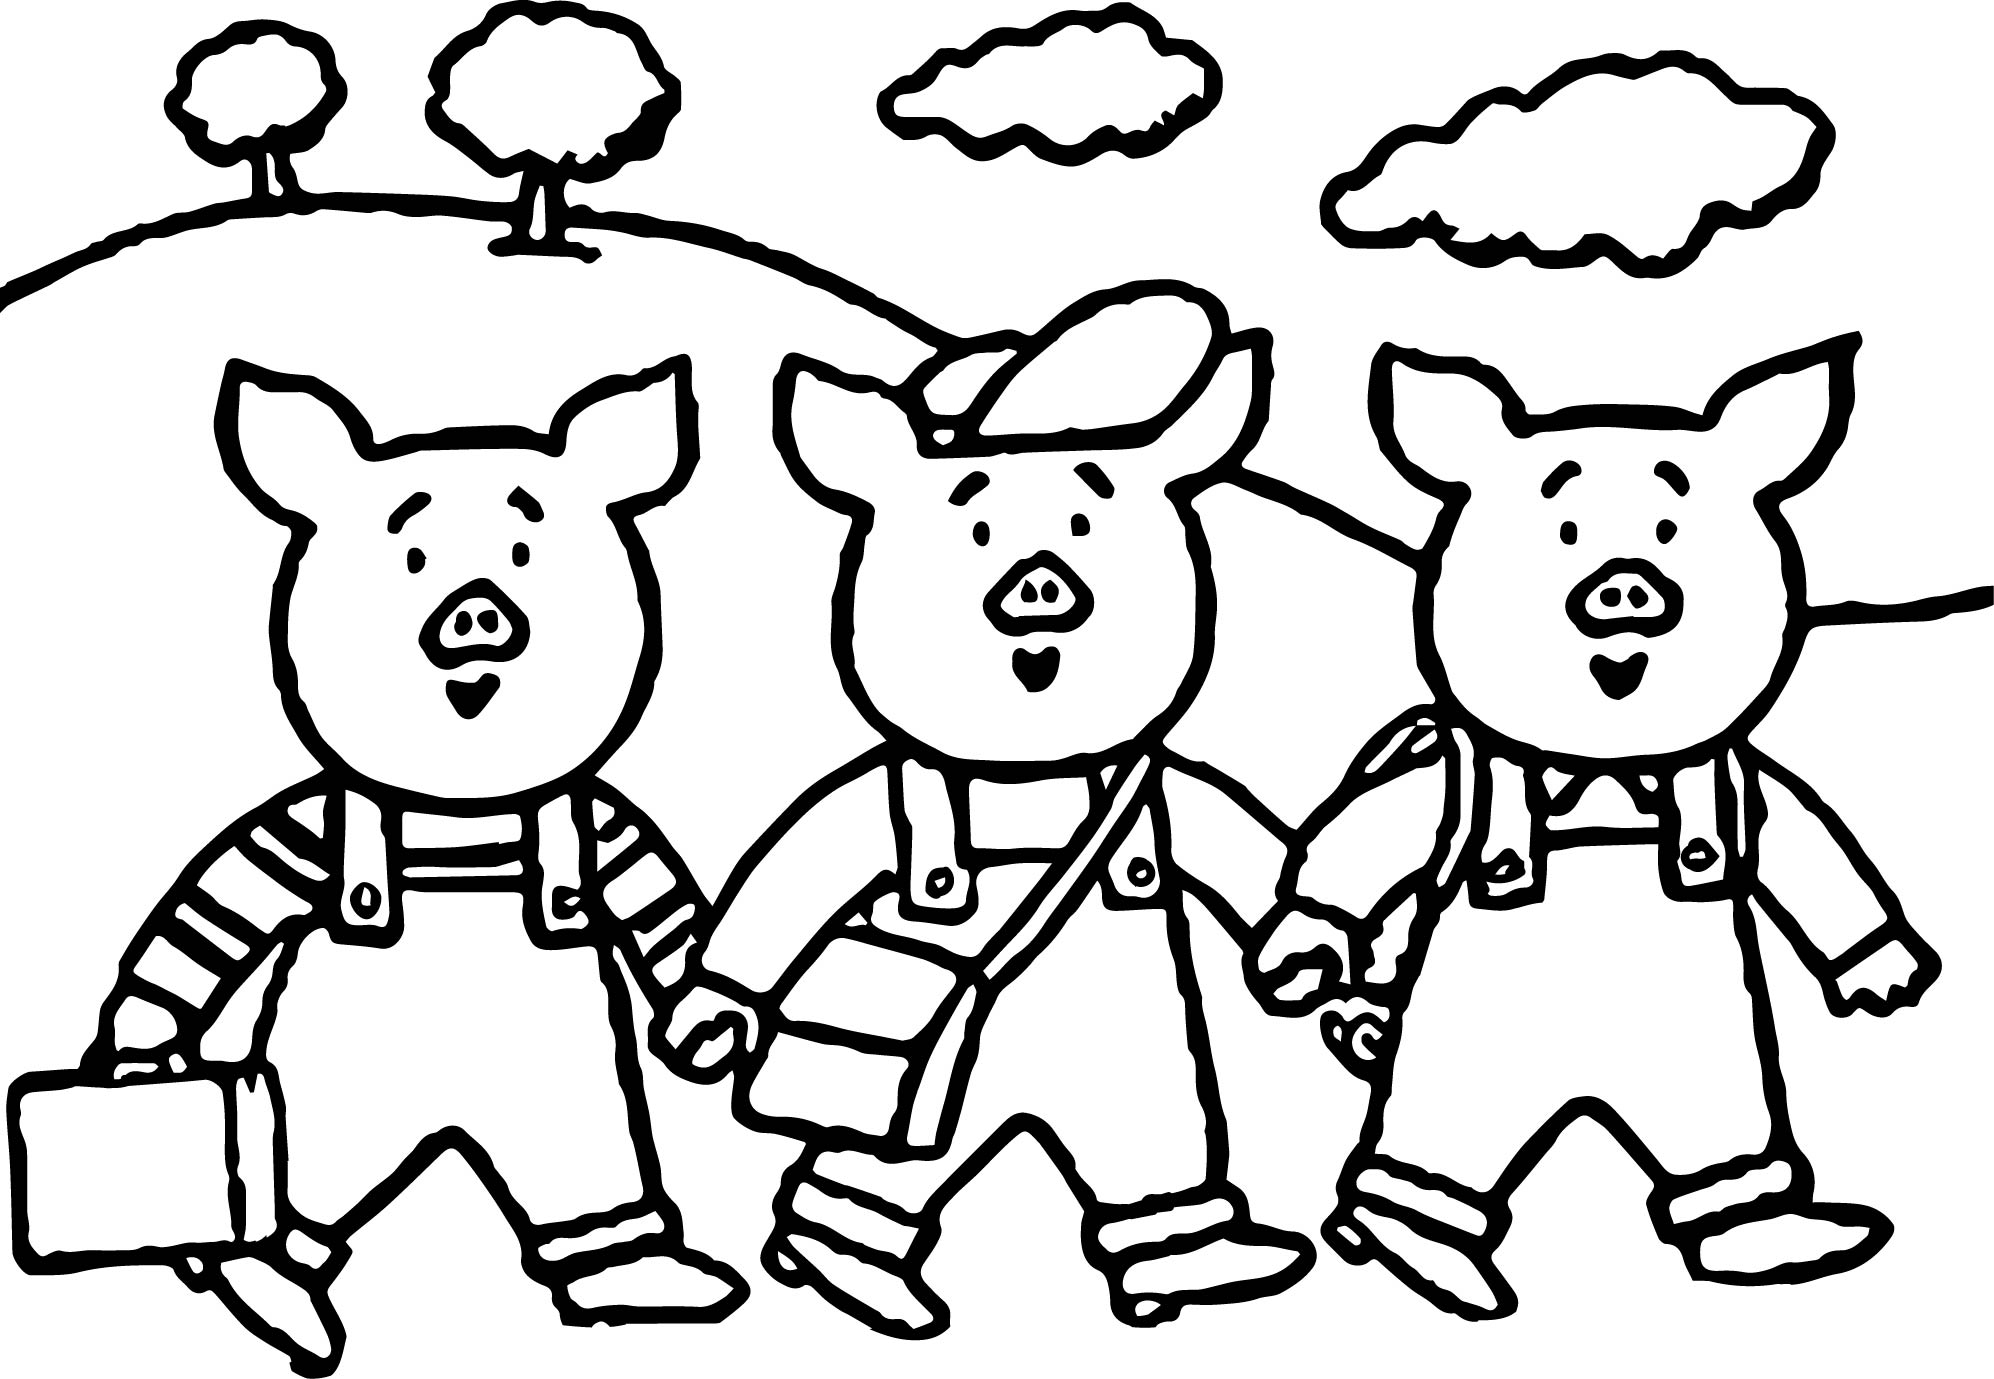 3 Little Pigs School Coloring Page | Wecoloringpage